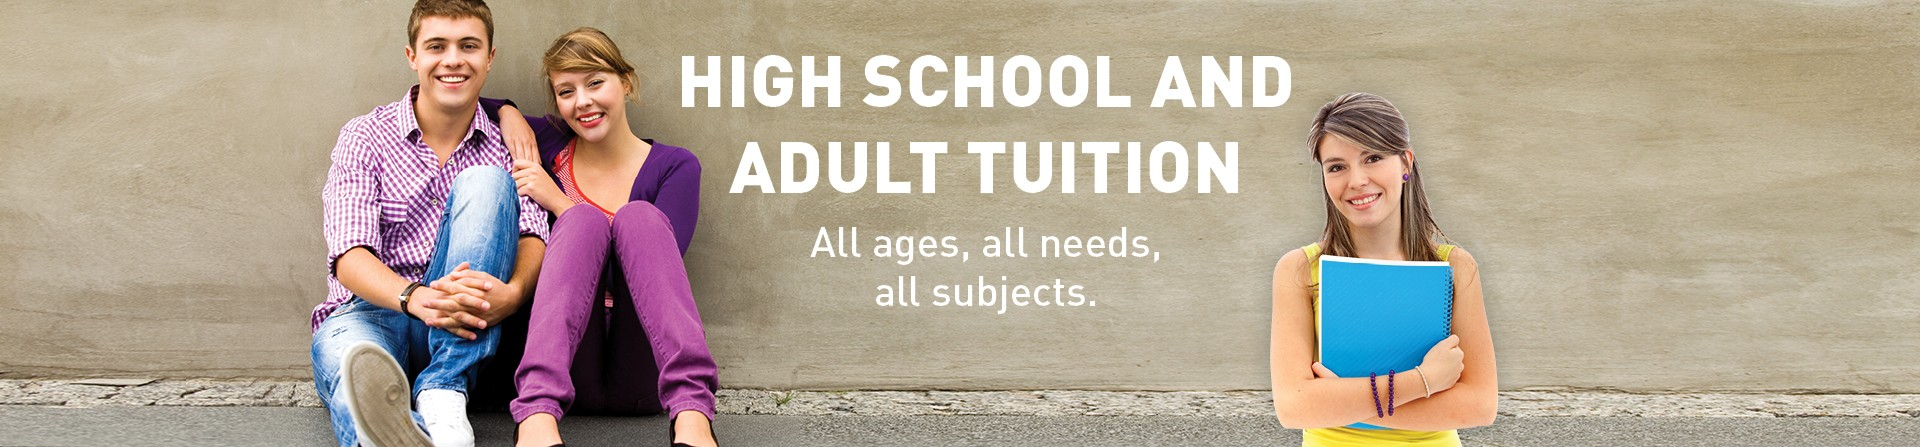 High School and Adult